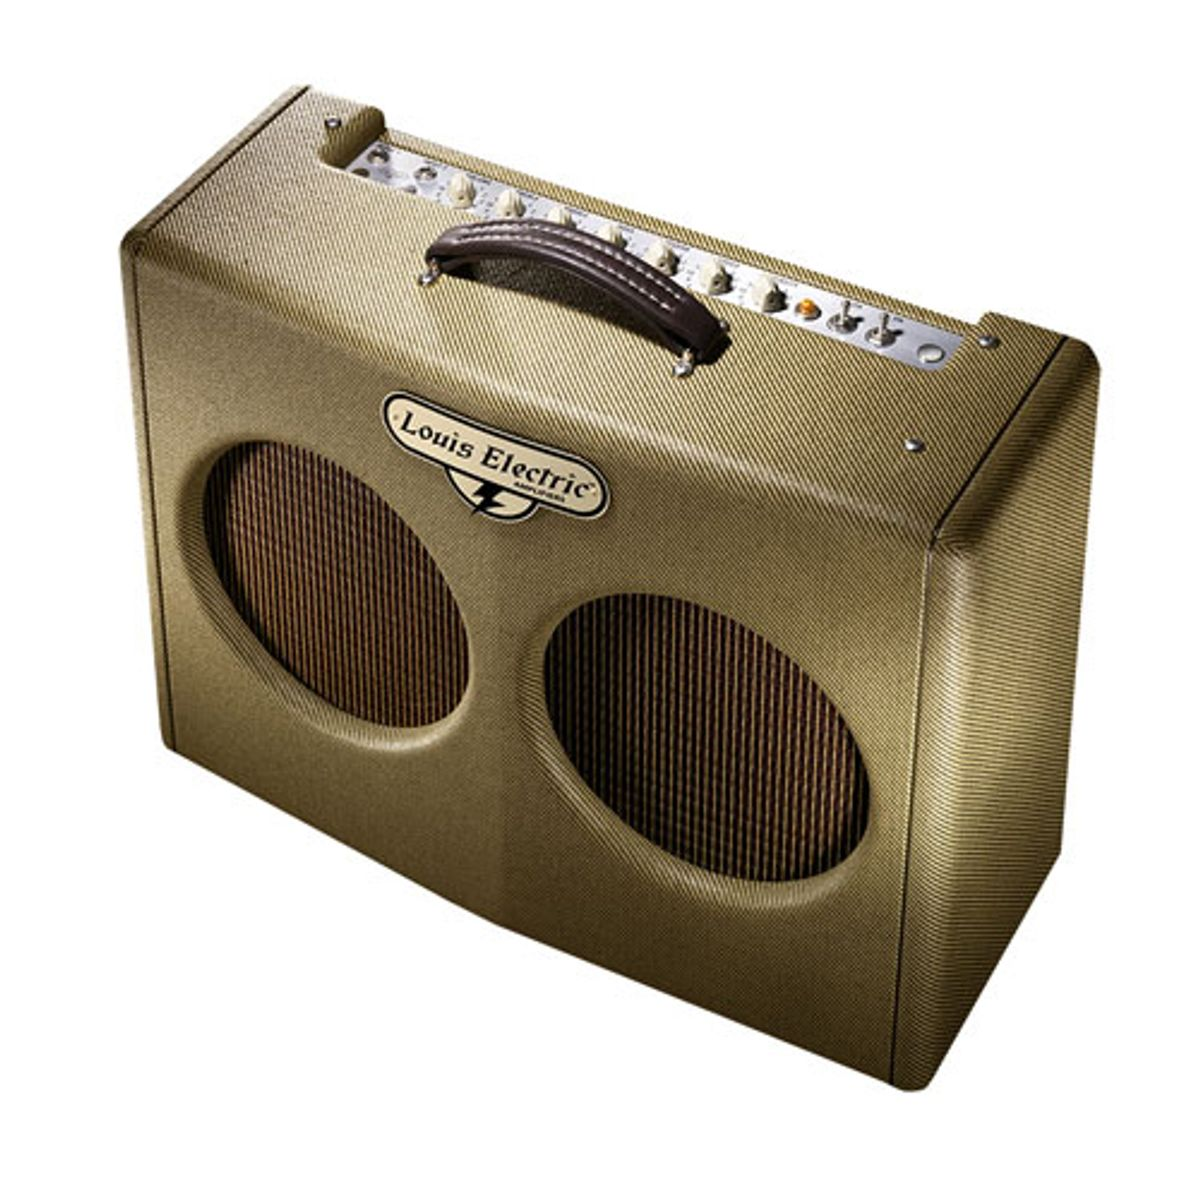 Louis Electric Introduces the Gattone Amp